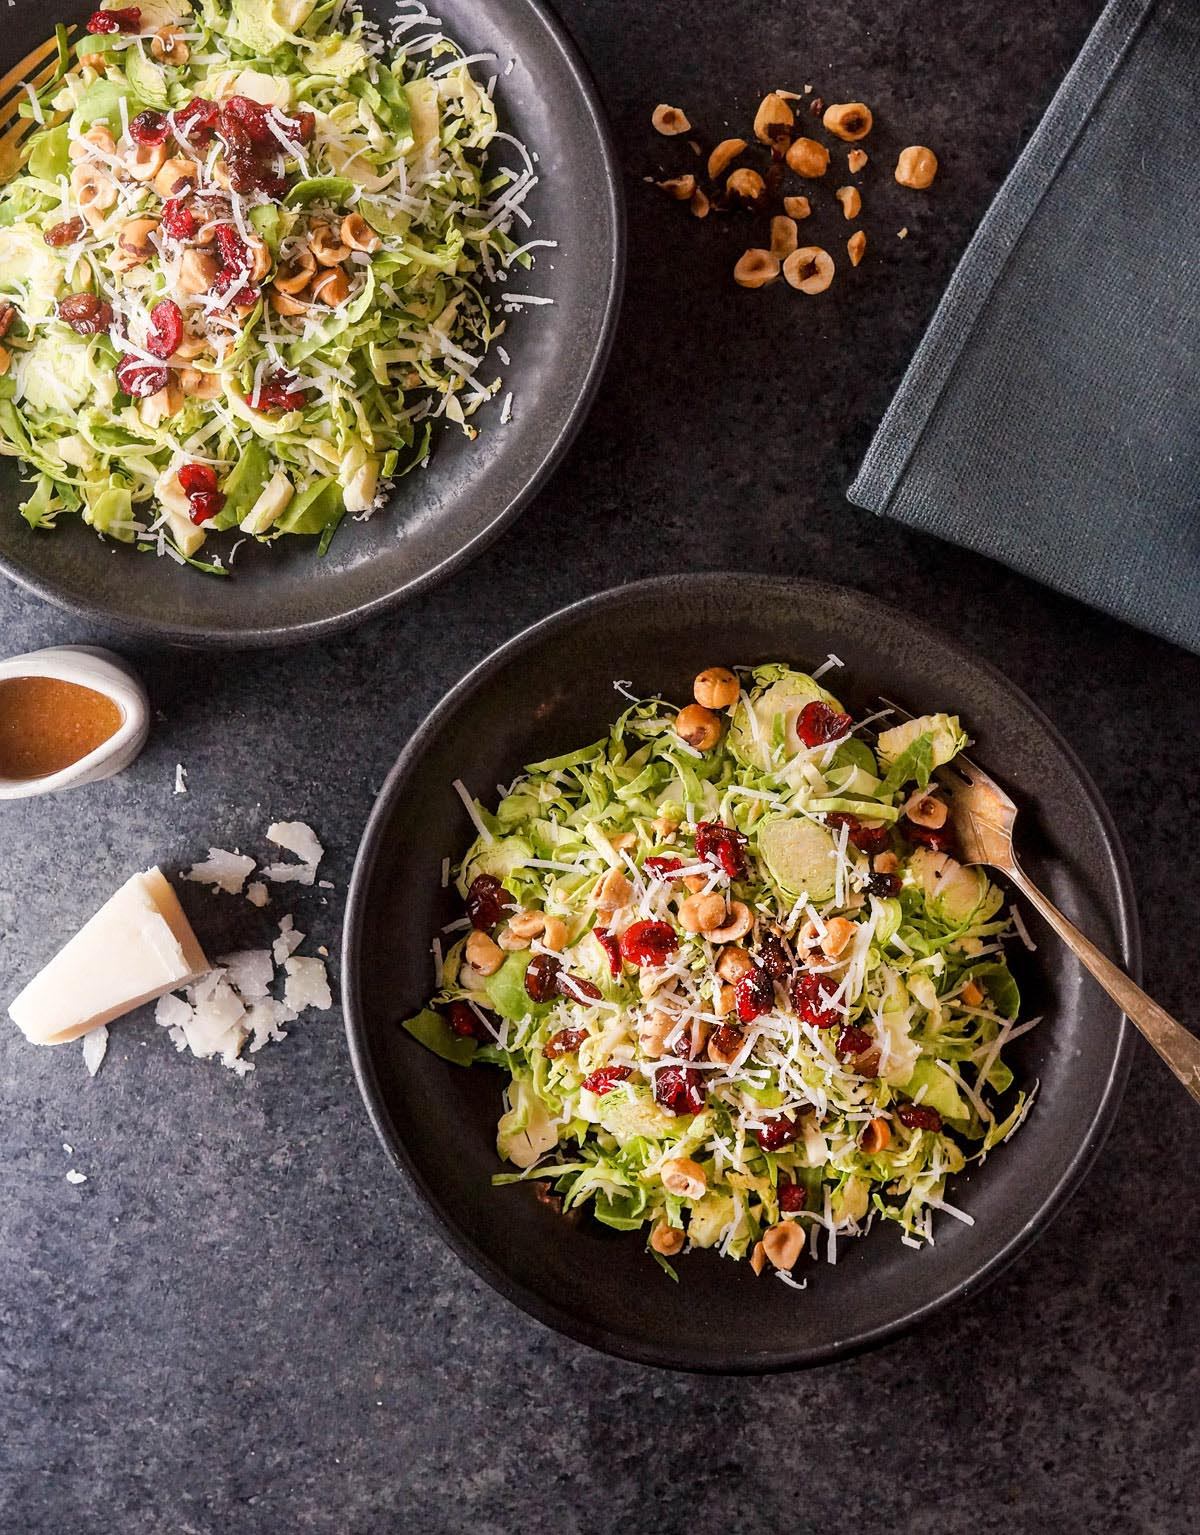 two bowls of brussels sprout salad with dried cranberries on top